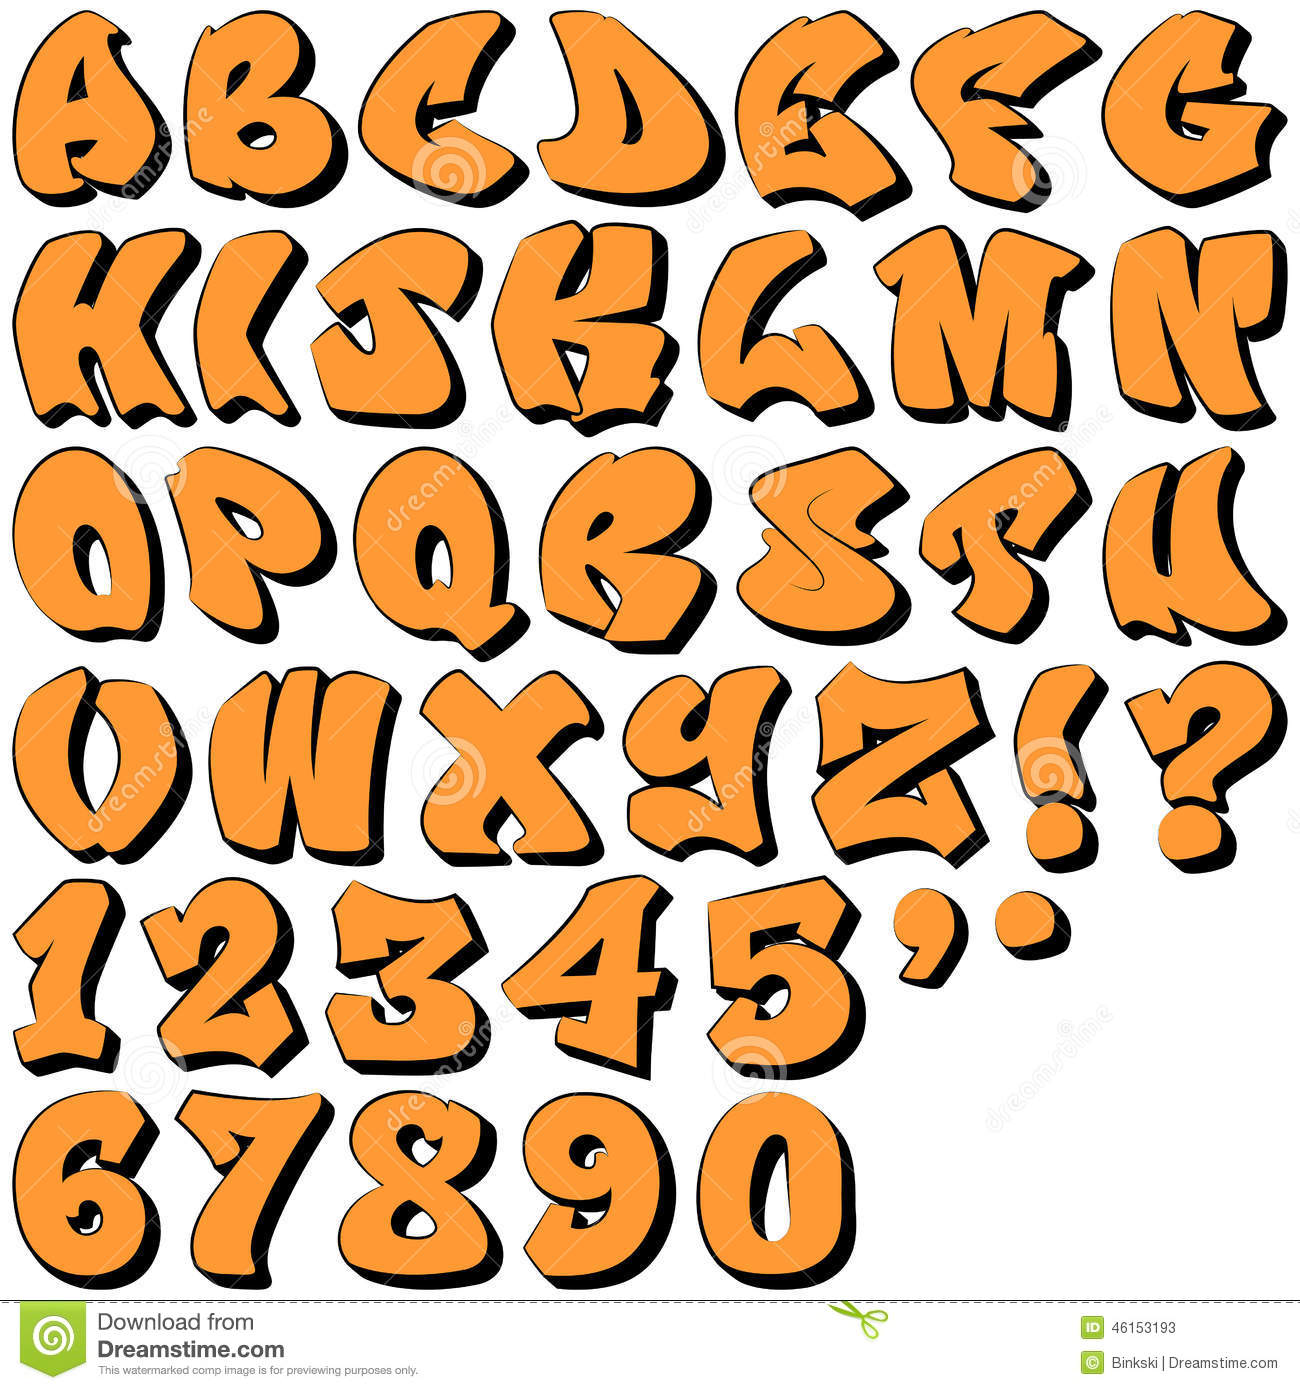 3d Schrift Abc Graffiti Letters And Numbers Stock Vector Illustration Of Grunge